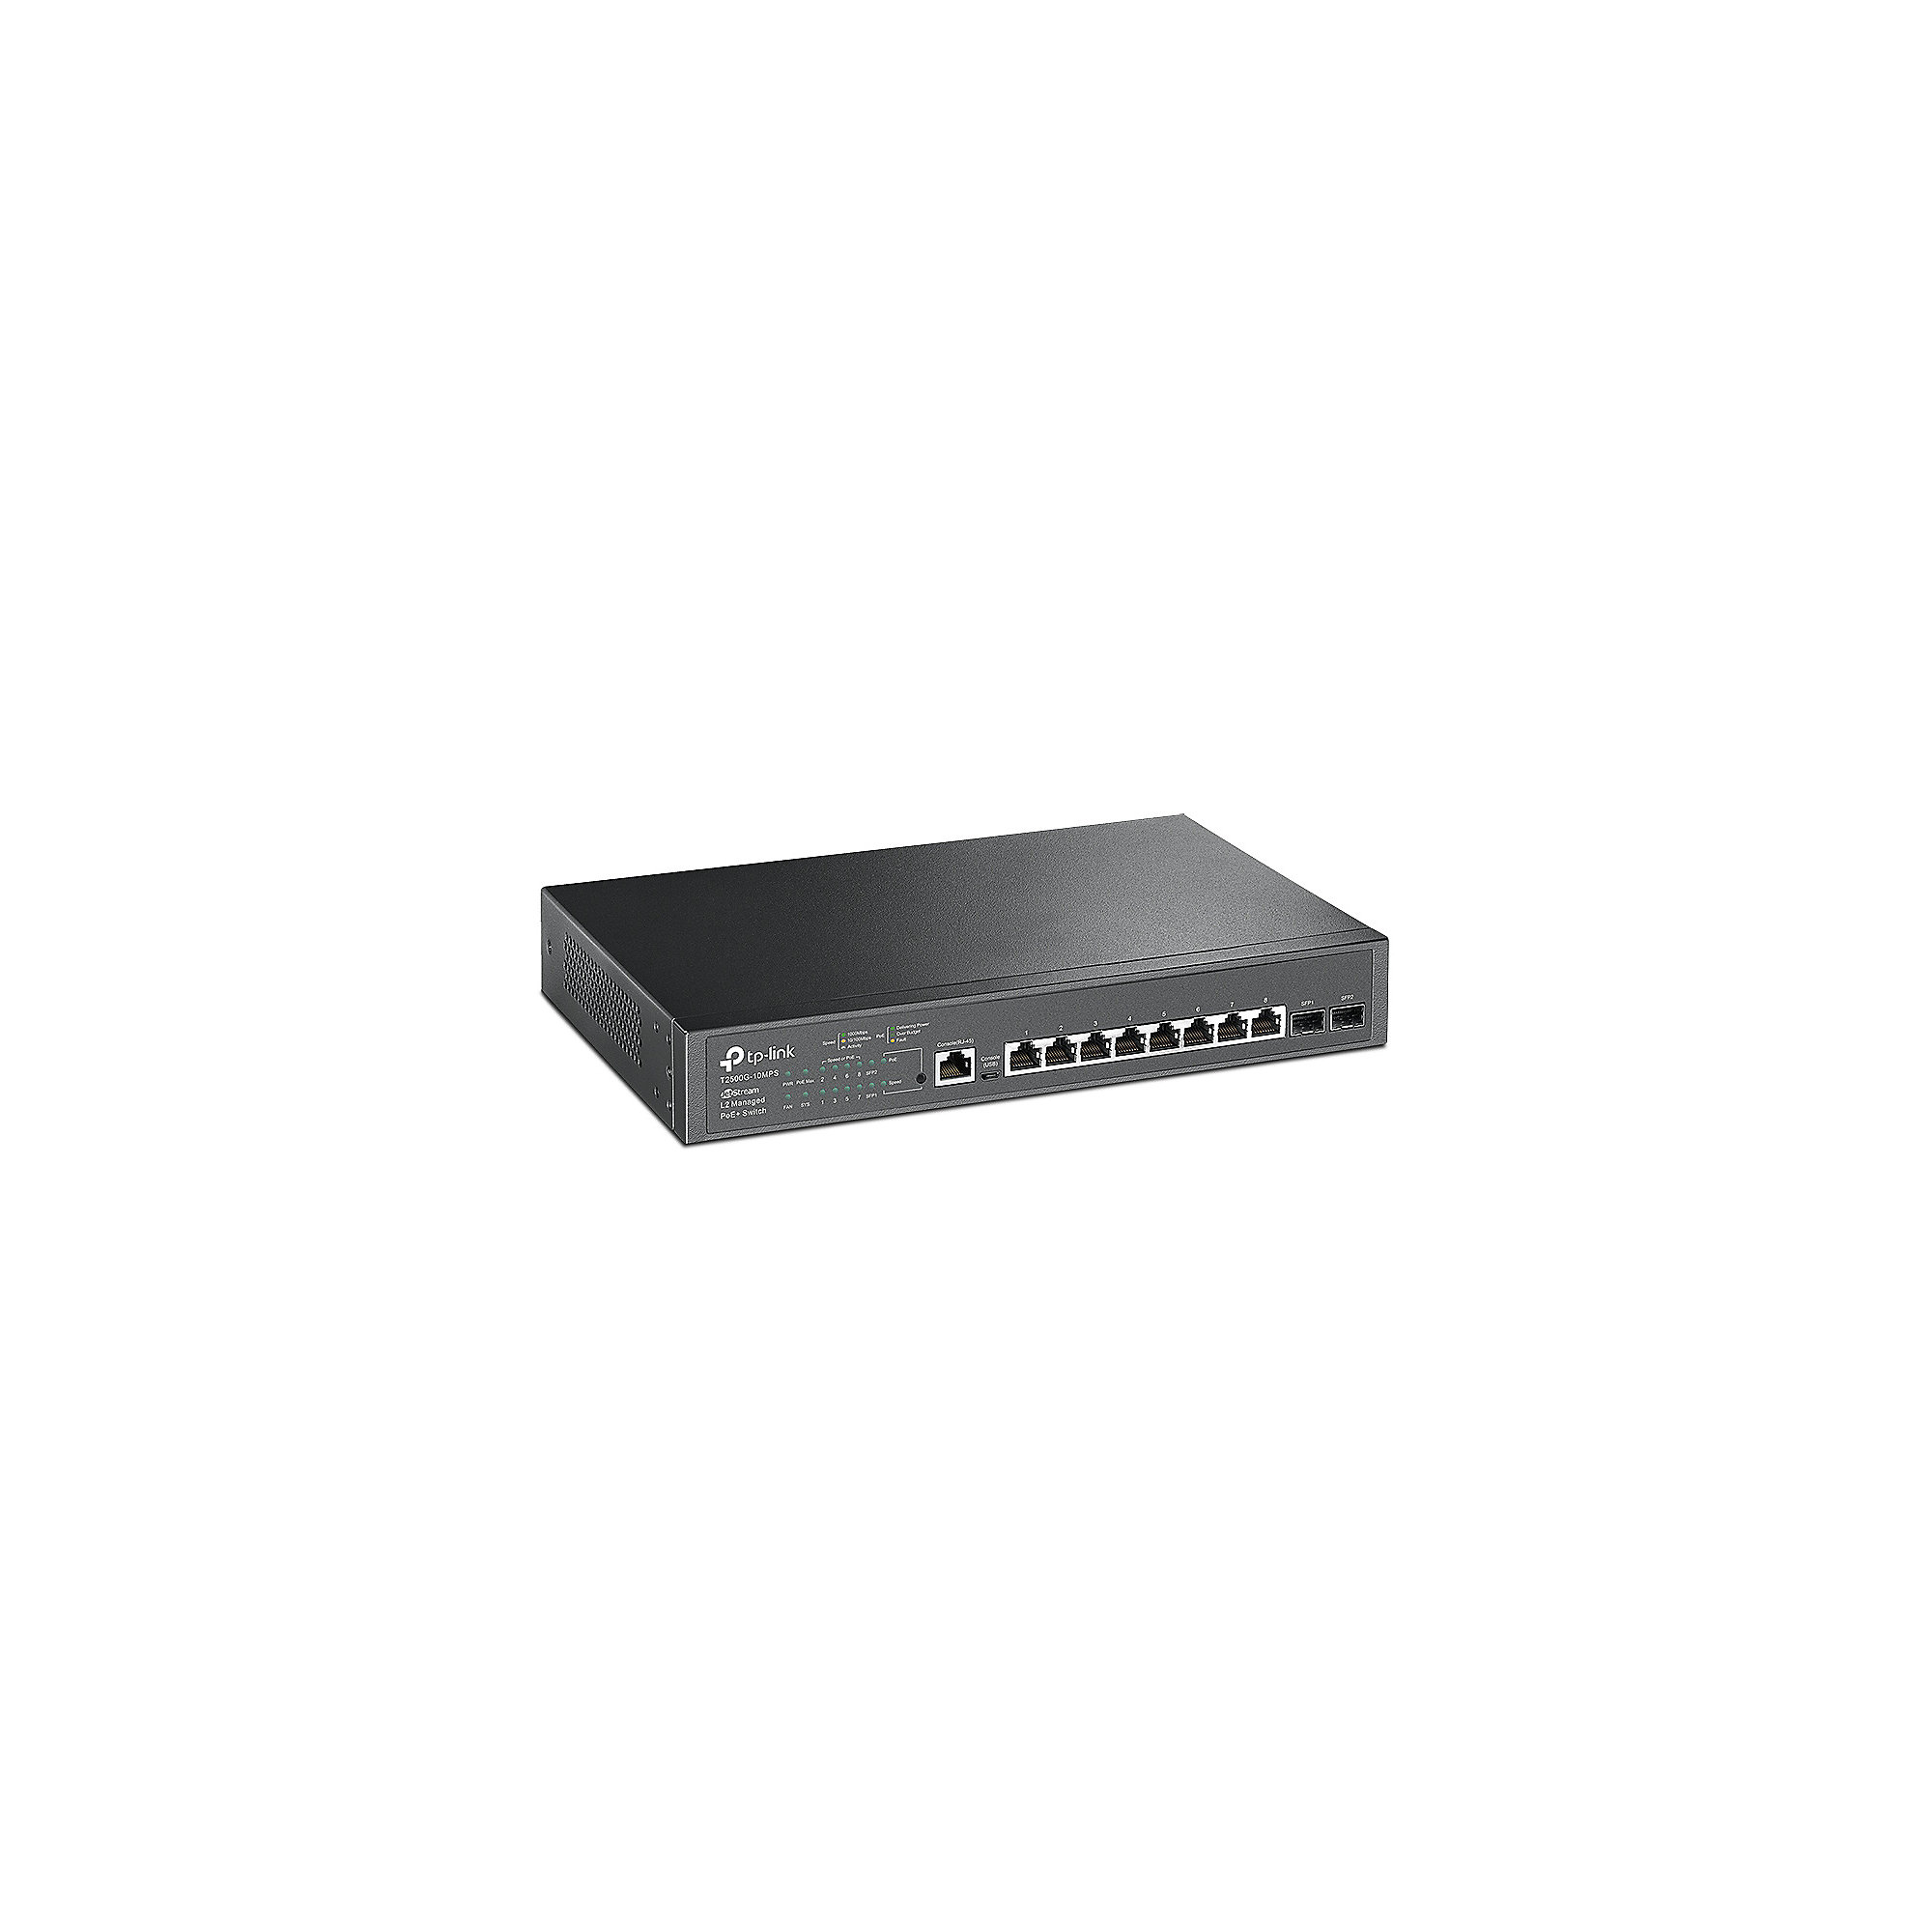 TP-LINK T2500G-10MPS 8x Port Desktop Gigabit L2 Managed Switch PoE+ 2xSFP